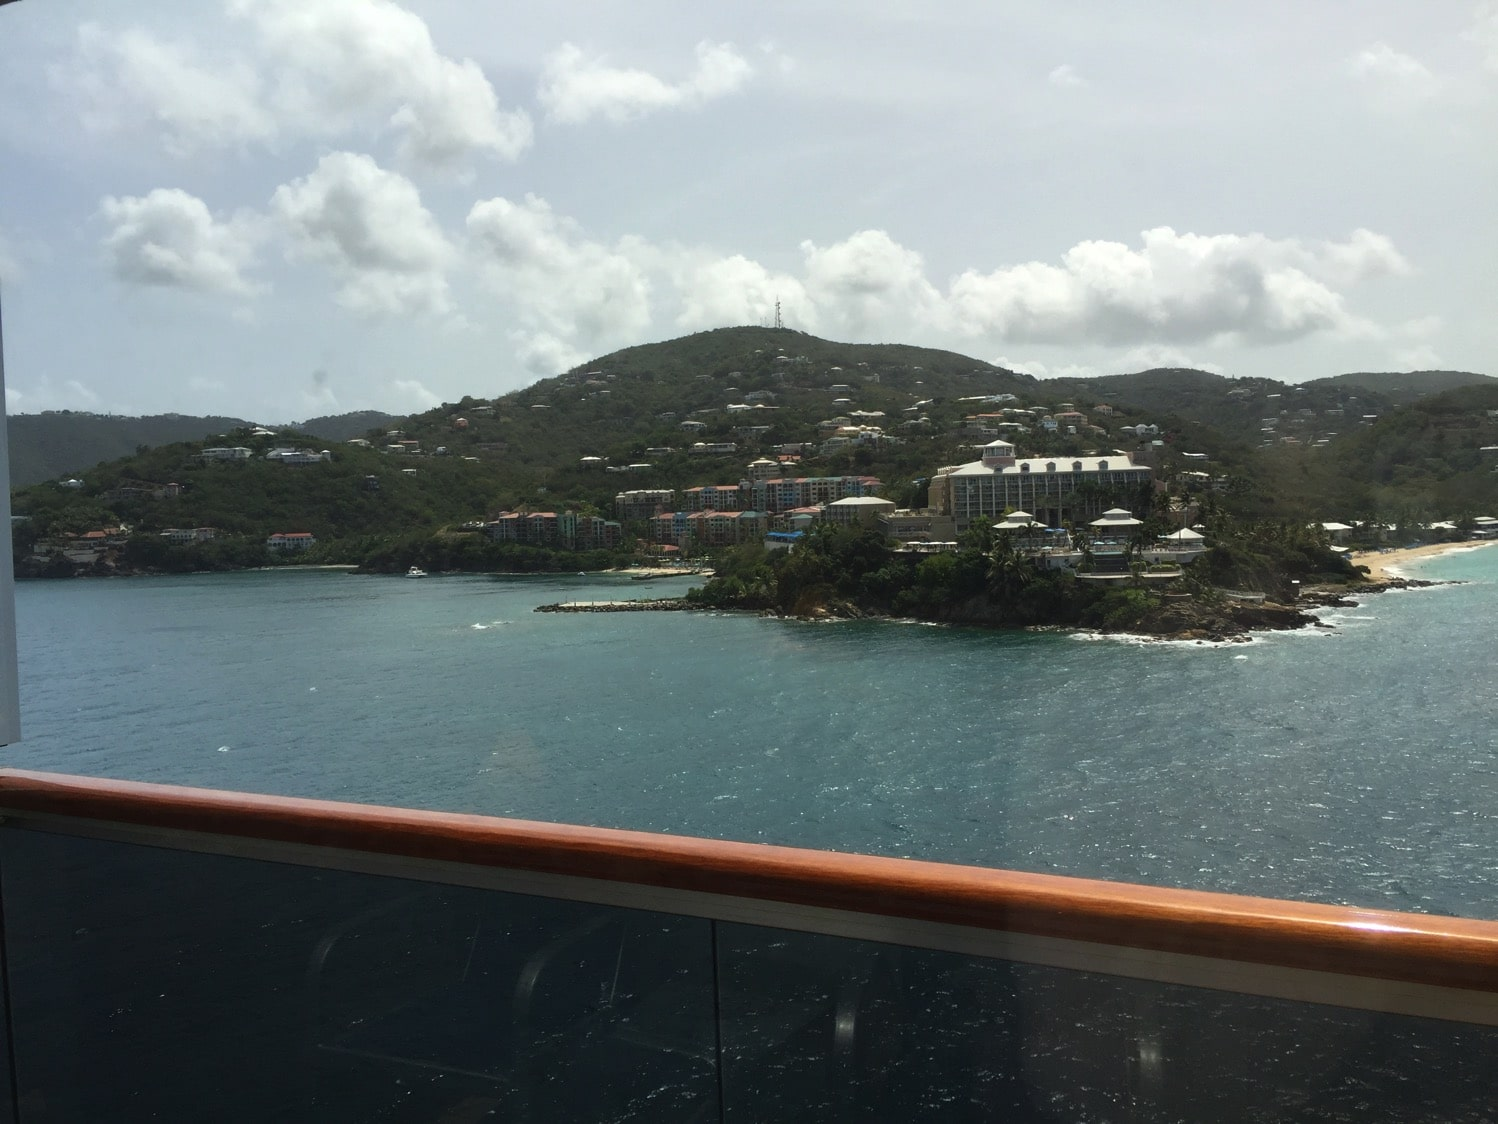 pulling into St. Thomas US Virgin Islands on Carnival Cruise